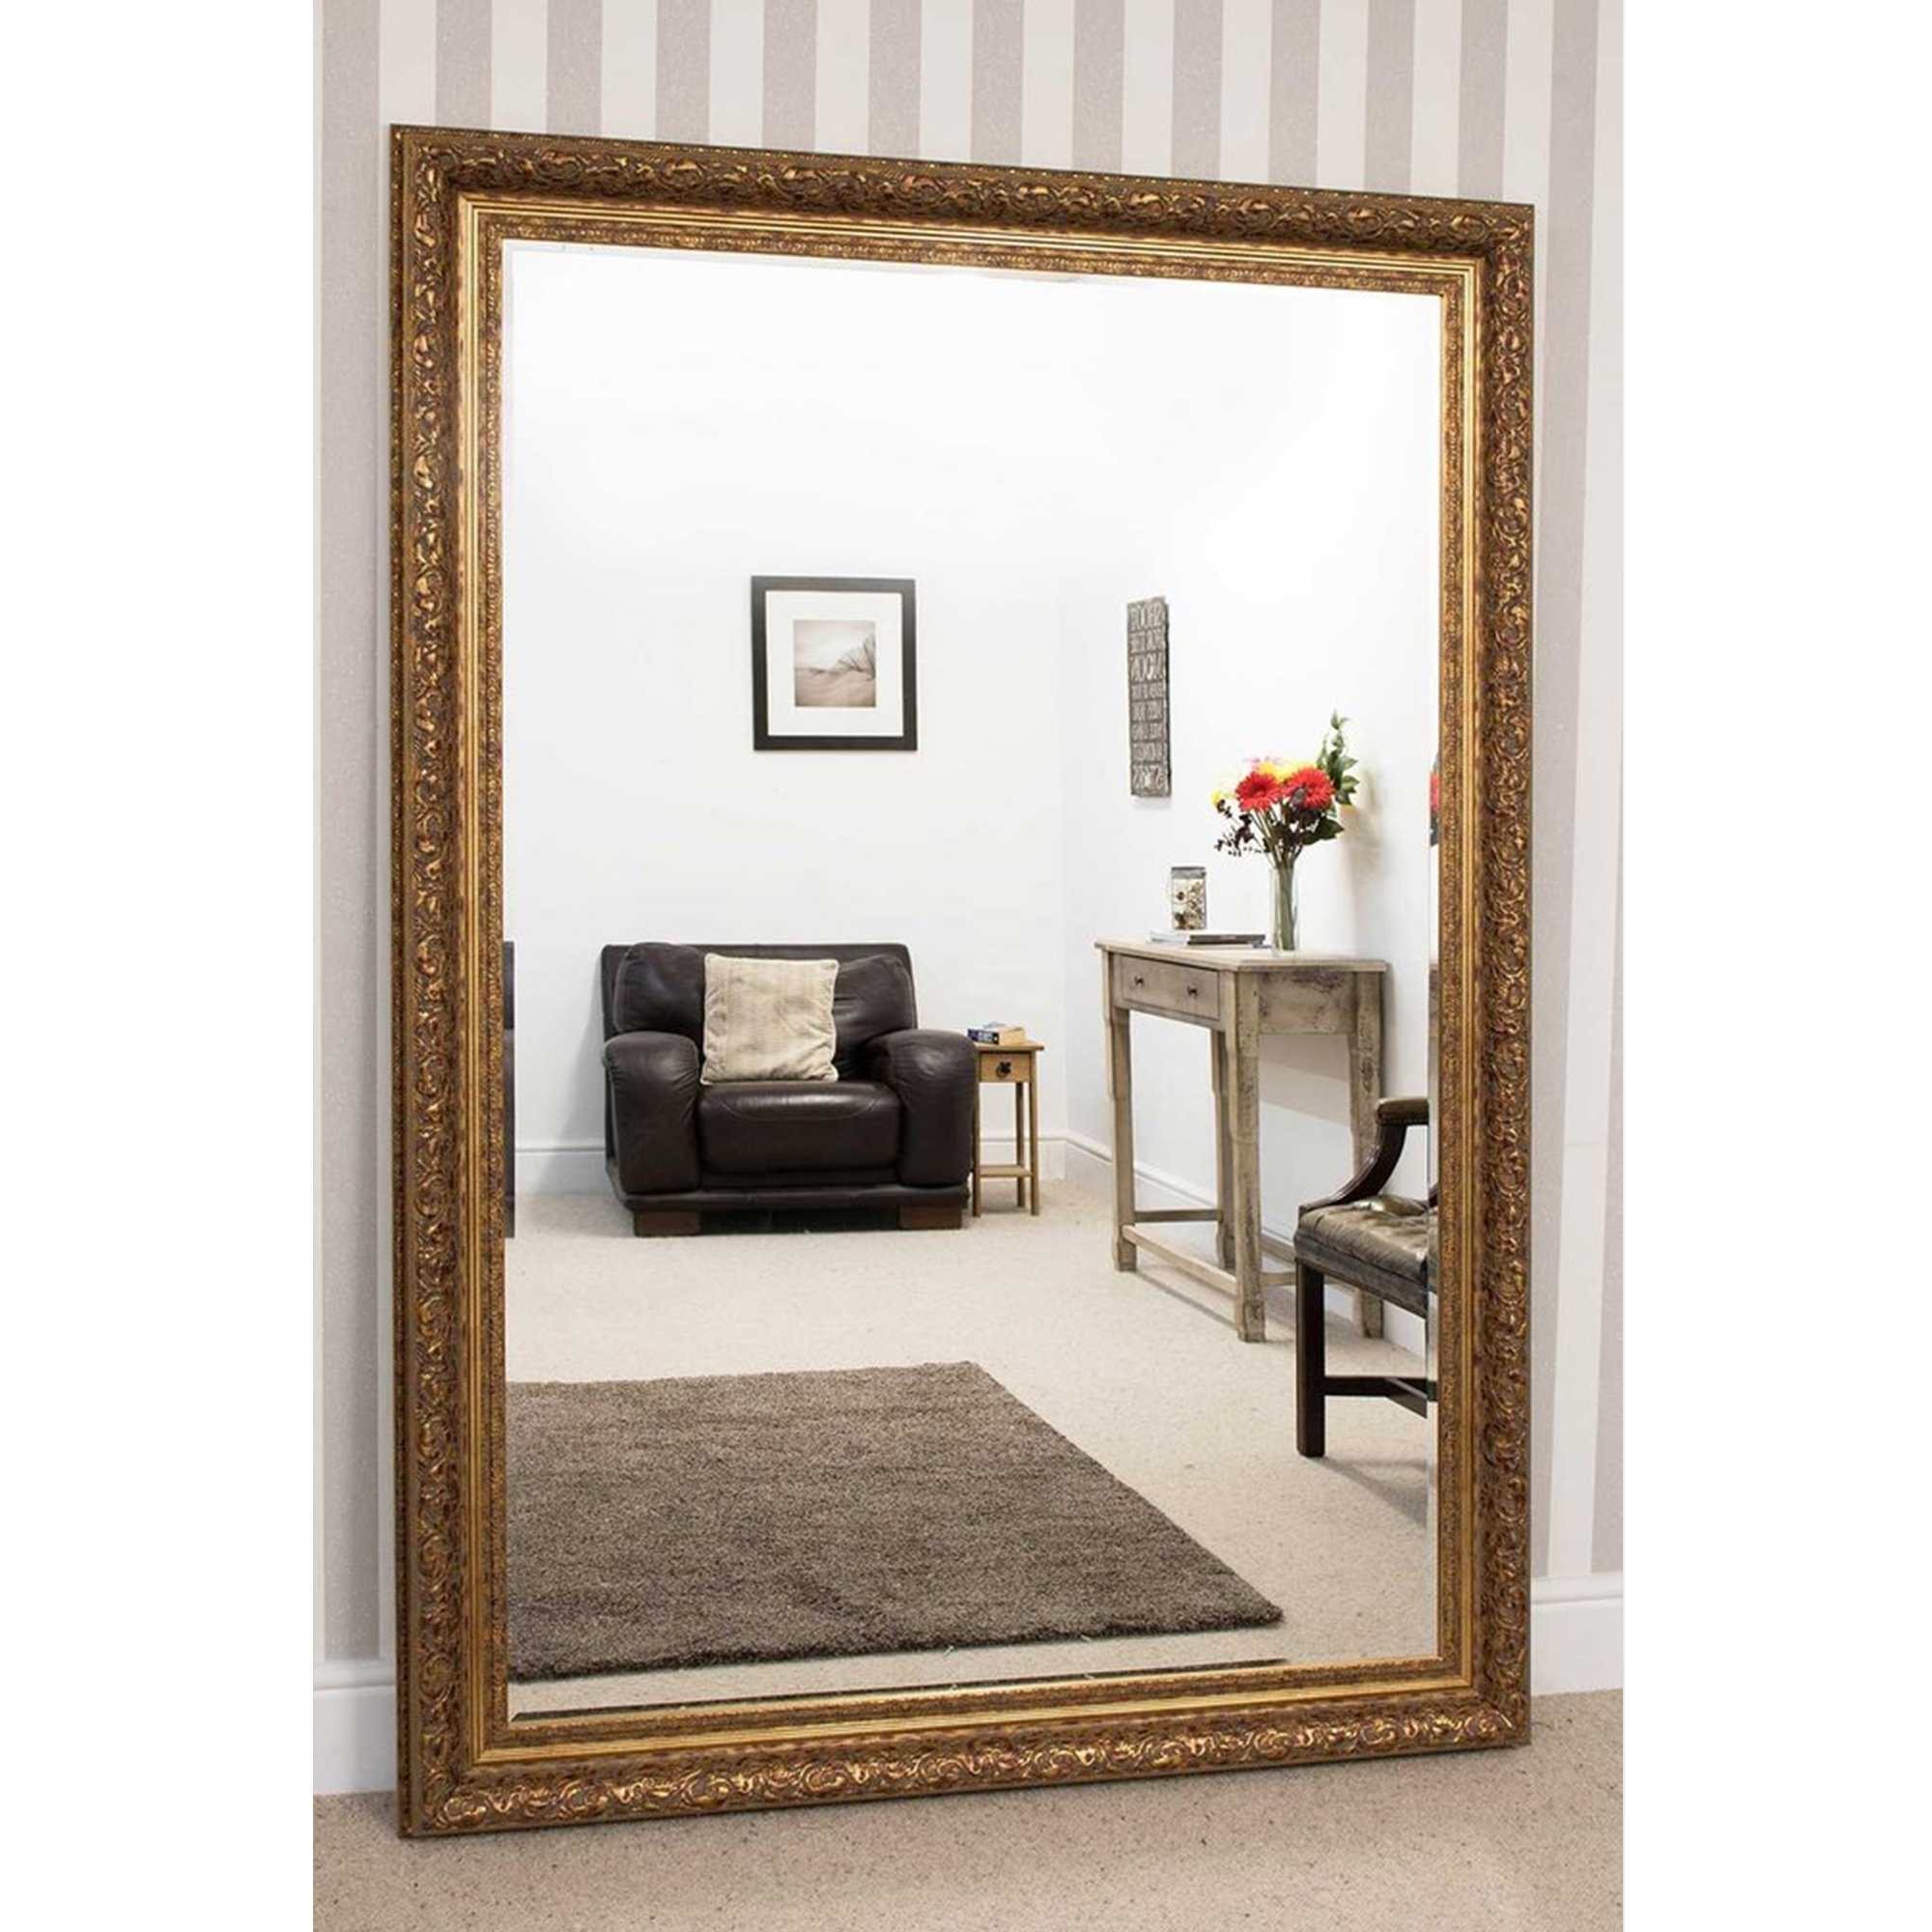 Large Gold Antique French Style Mirror Decorative Mirrors Regarding Large French Style Mirror (Image 8 of 15)